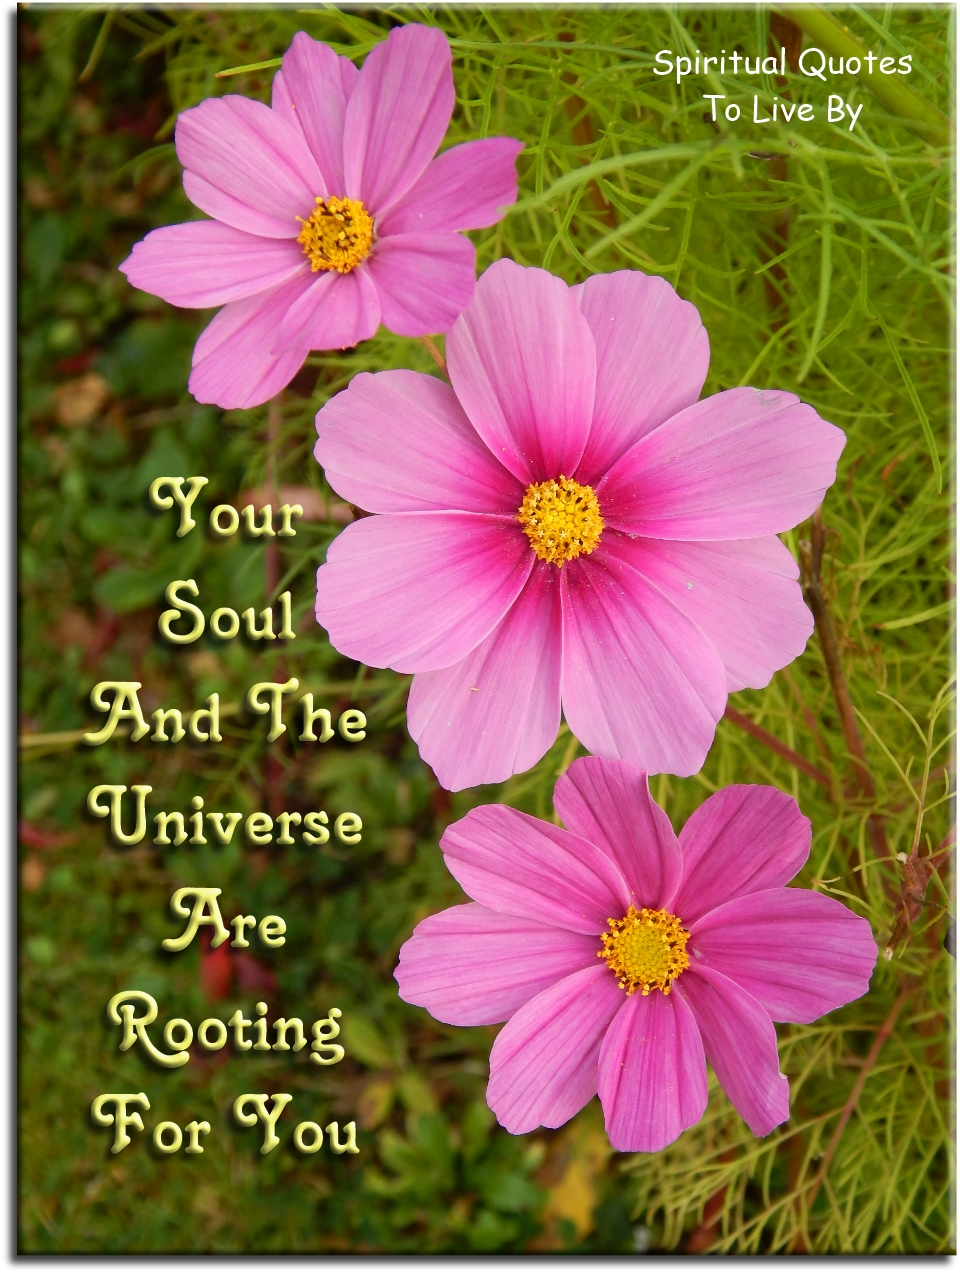 Your Soul and the Universe are rooting for you - Spiritual Quotes To Live By